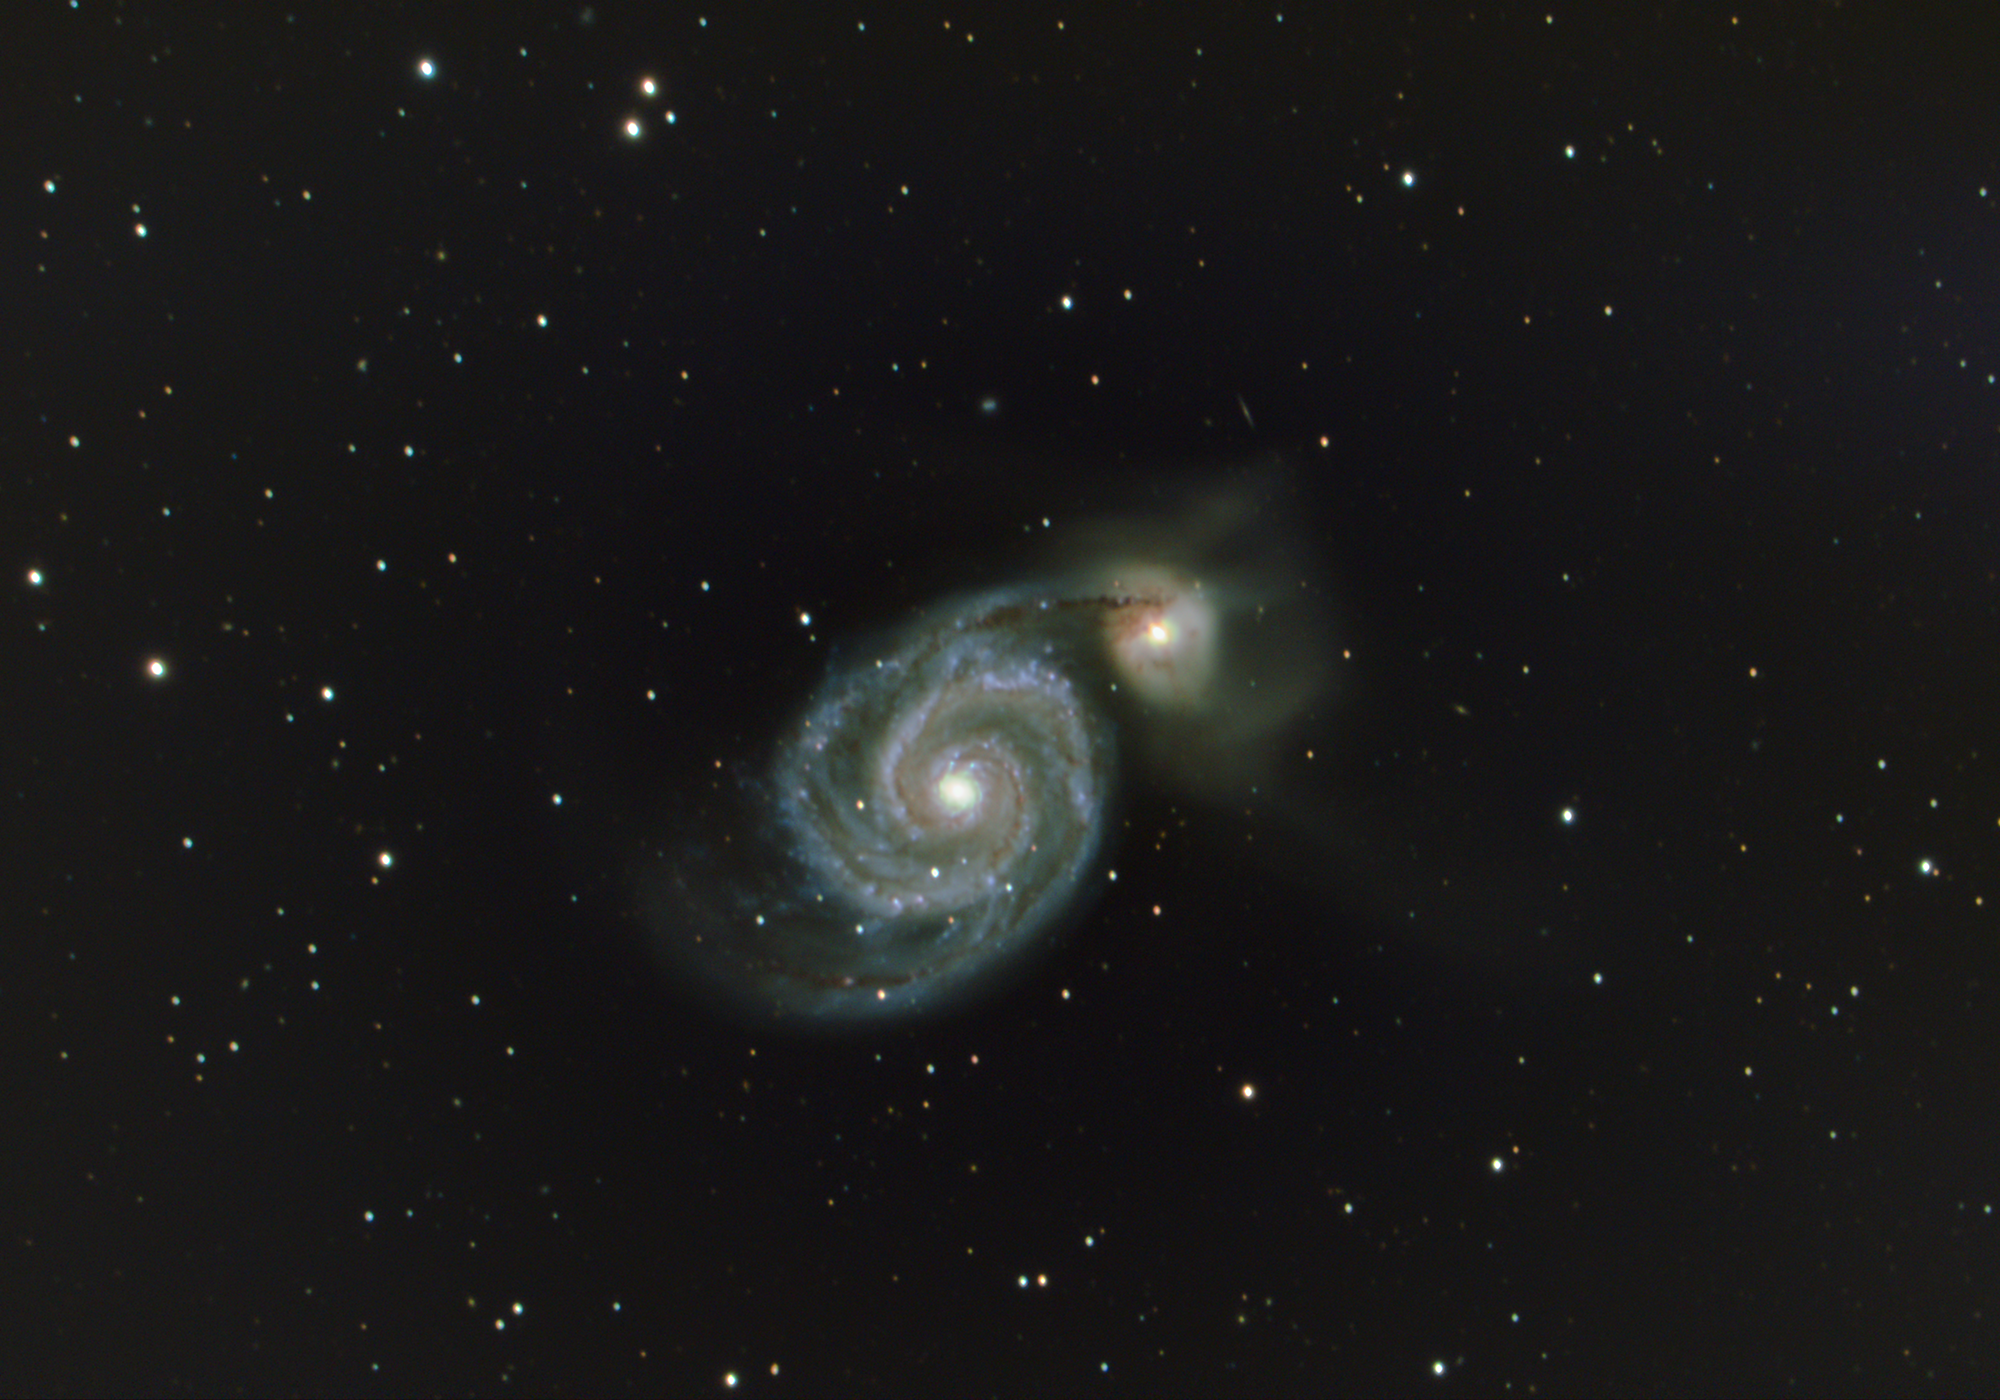 Messier 51: The Whirlpool Galaxy